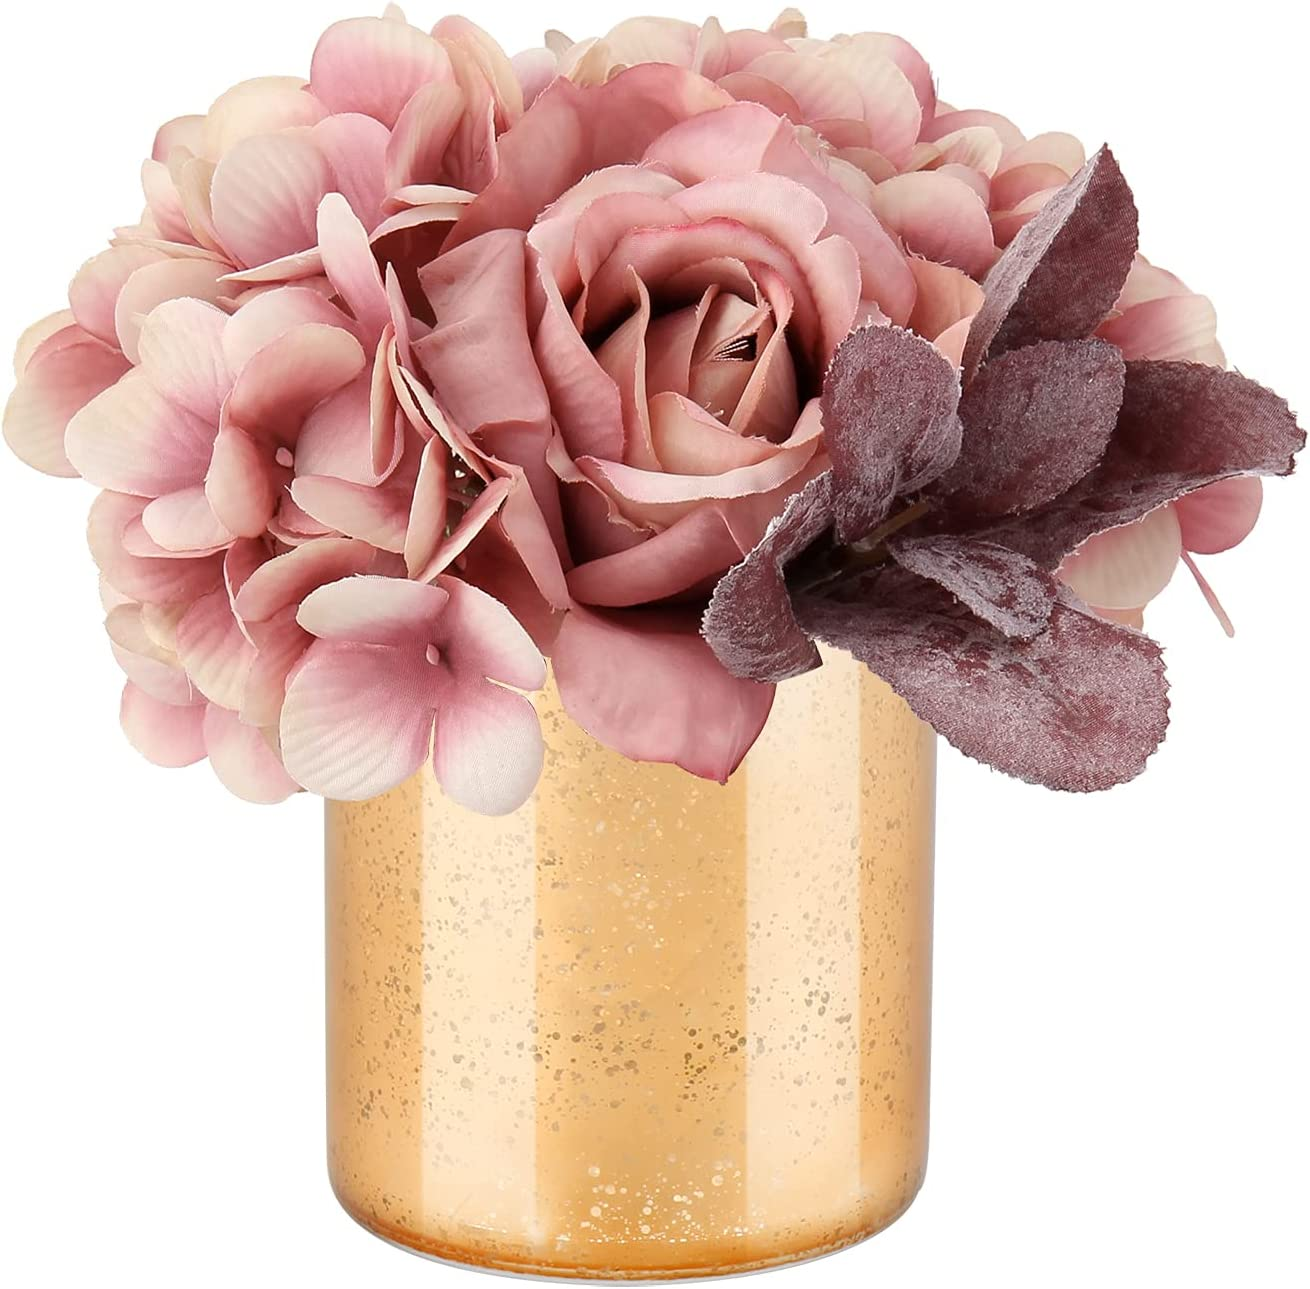 Artificial Flowers with Vase Fake Rose Hydrangea Flower for Home Office Wedding Table Decor -Pink Flowers Pink Decor